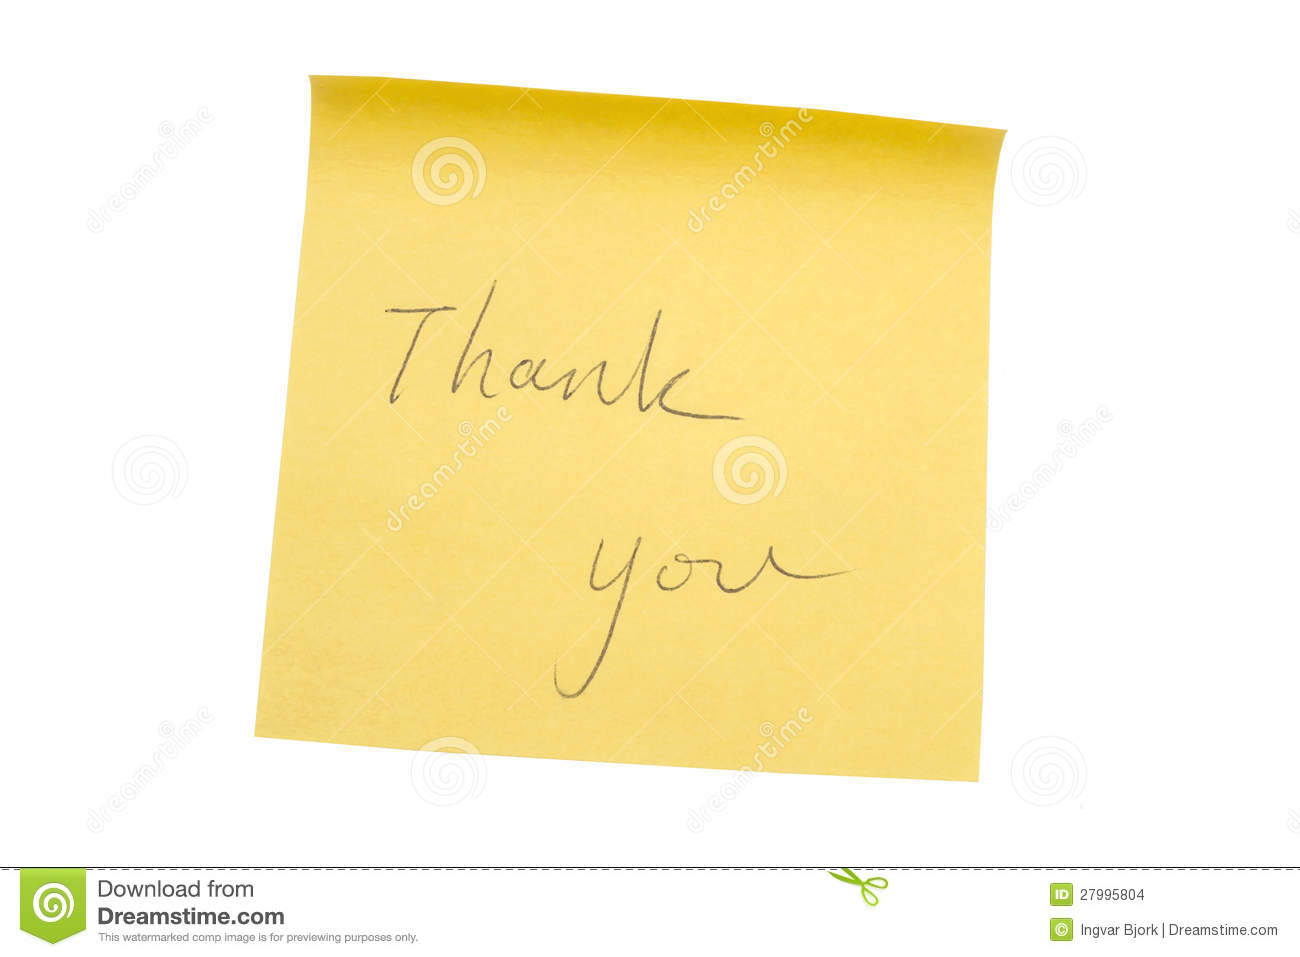 Yellow memo paper stock photo  Image of notice, remember - 27995804